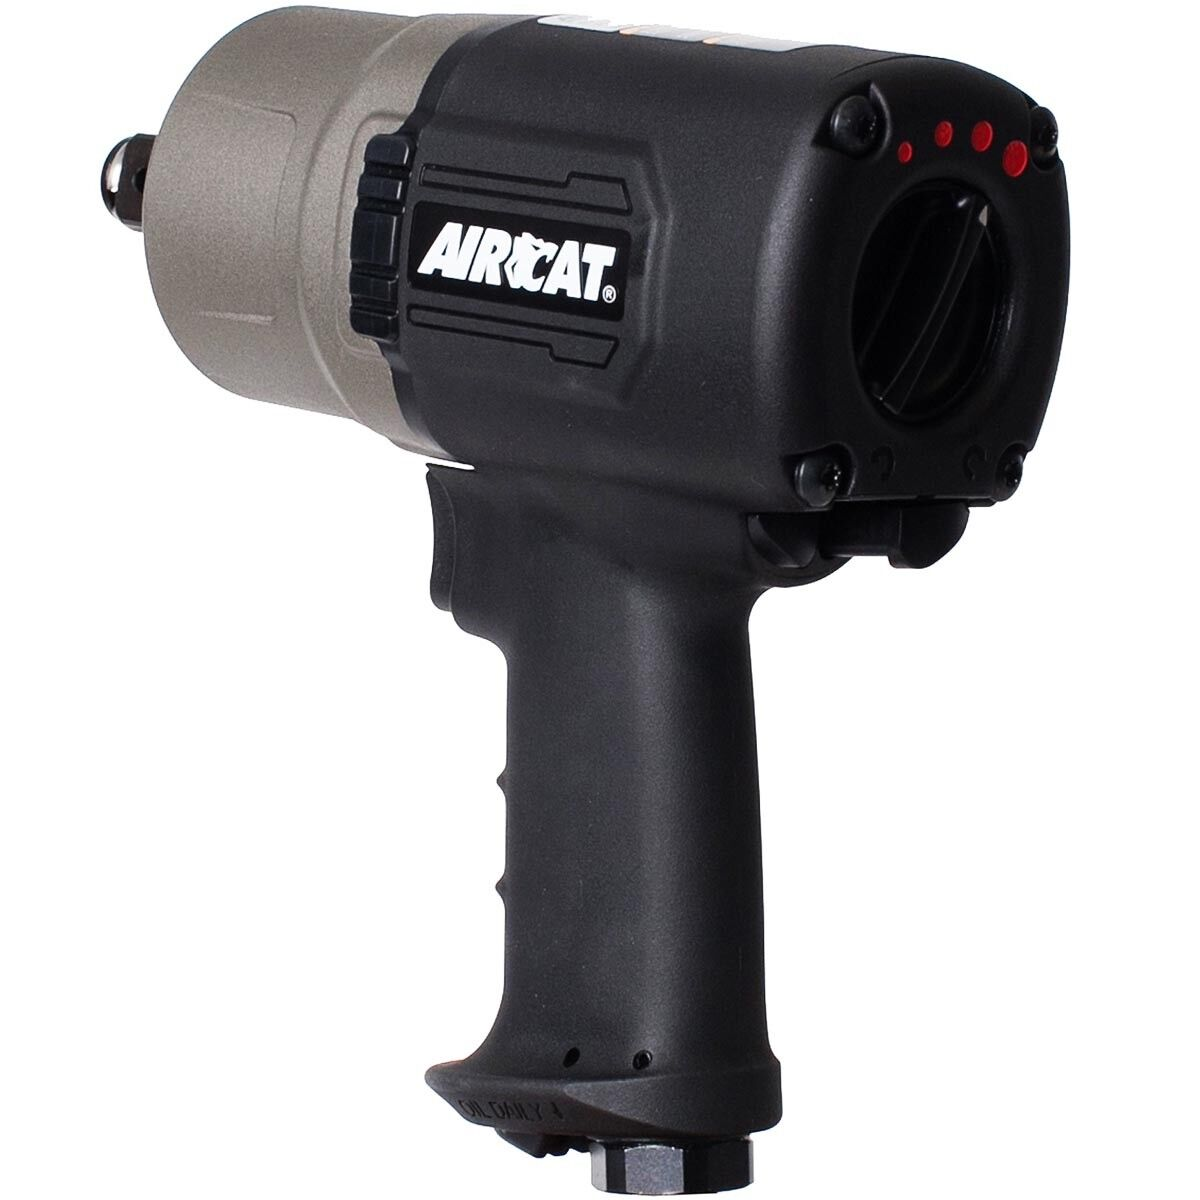 """AirCat 1770-XL 3/4"""" Super Duty Composite Impact Wrench with FREE SHIPPING!!!"""